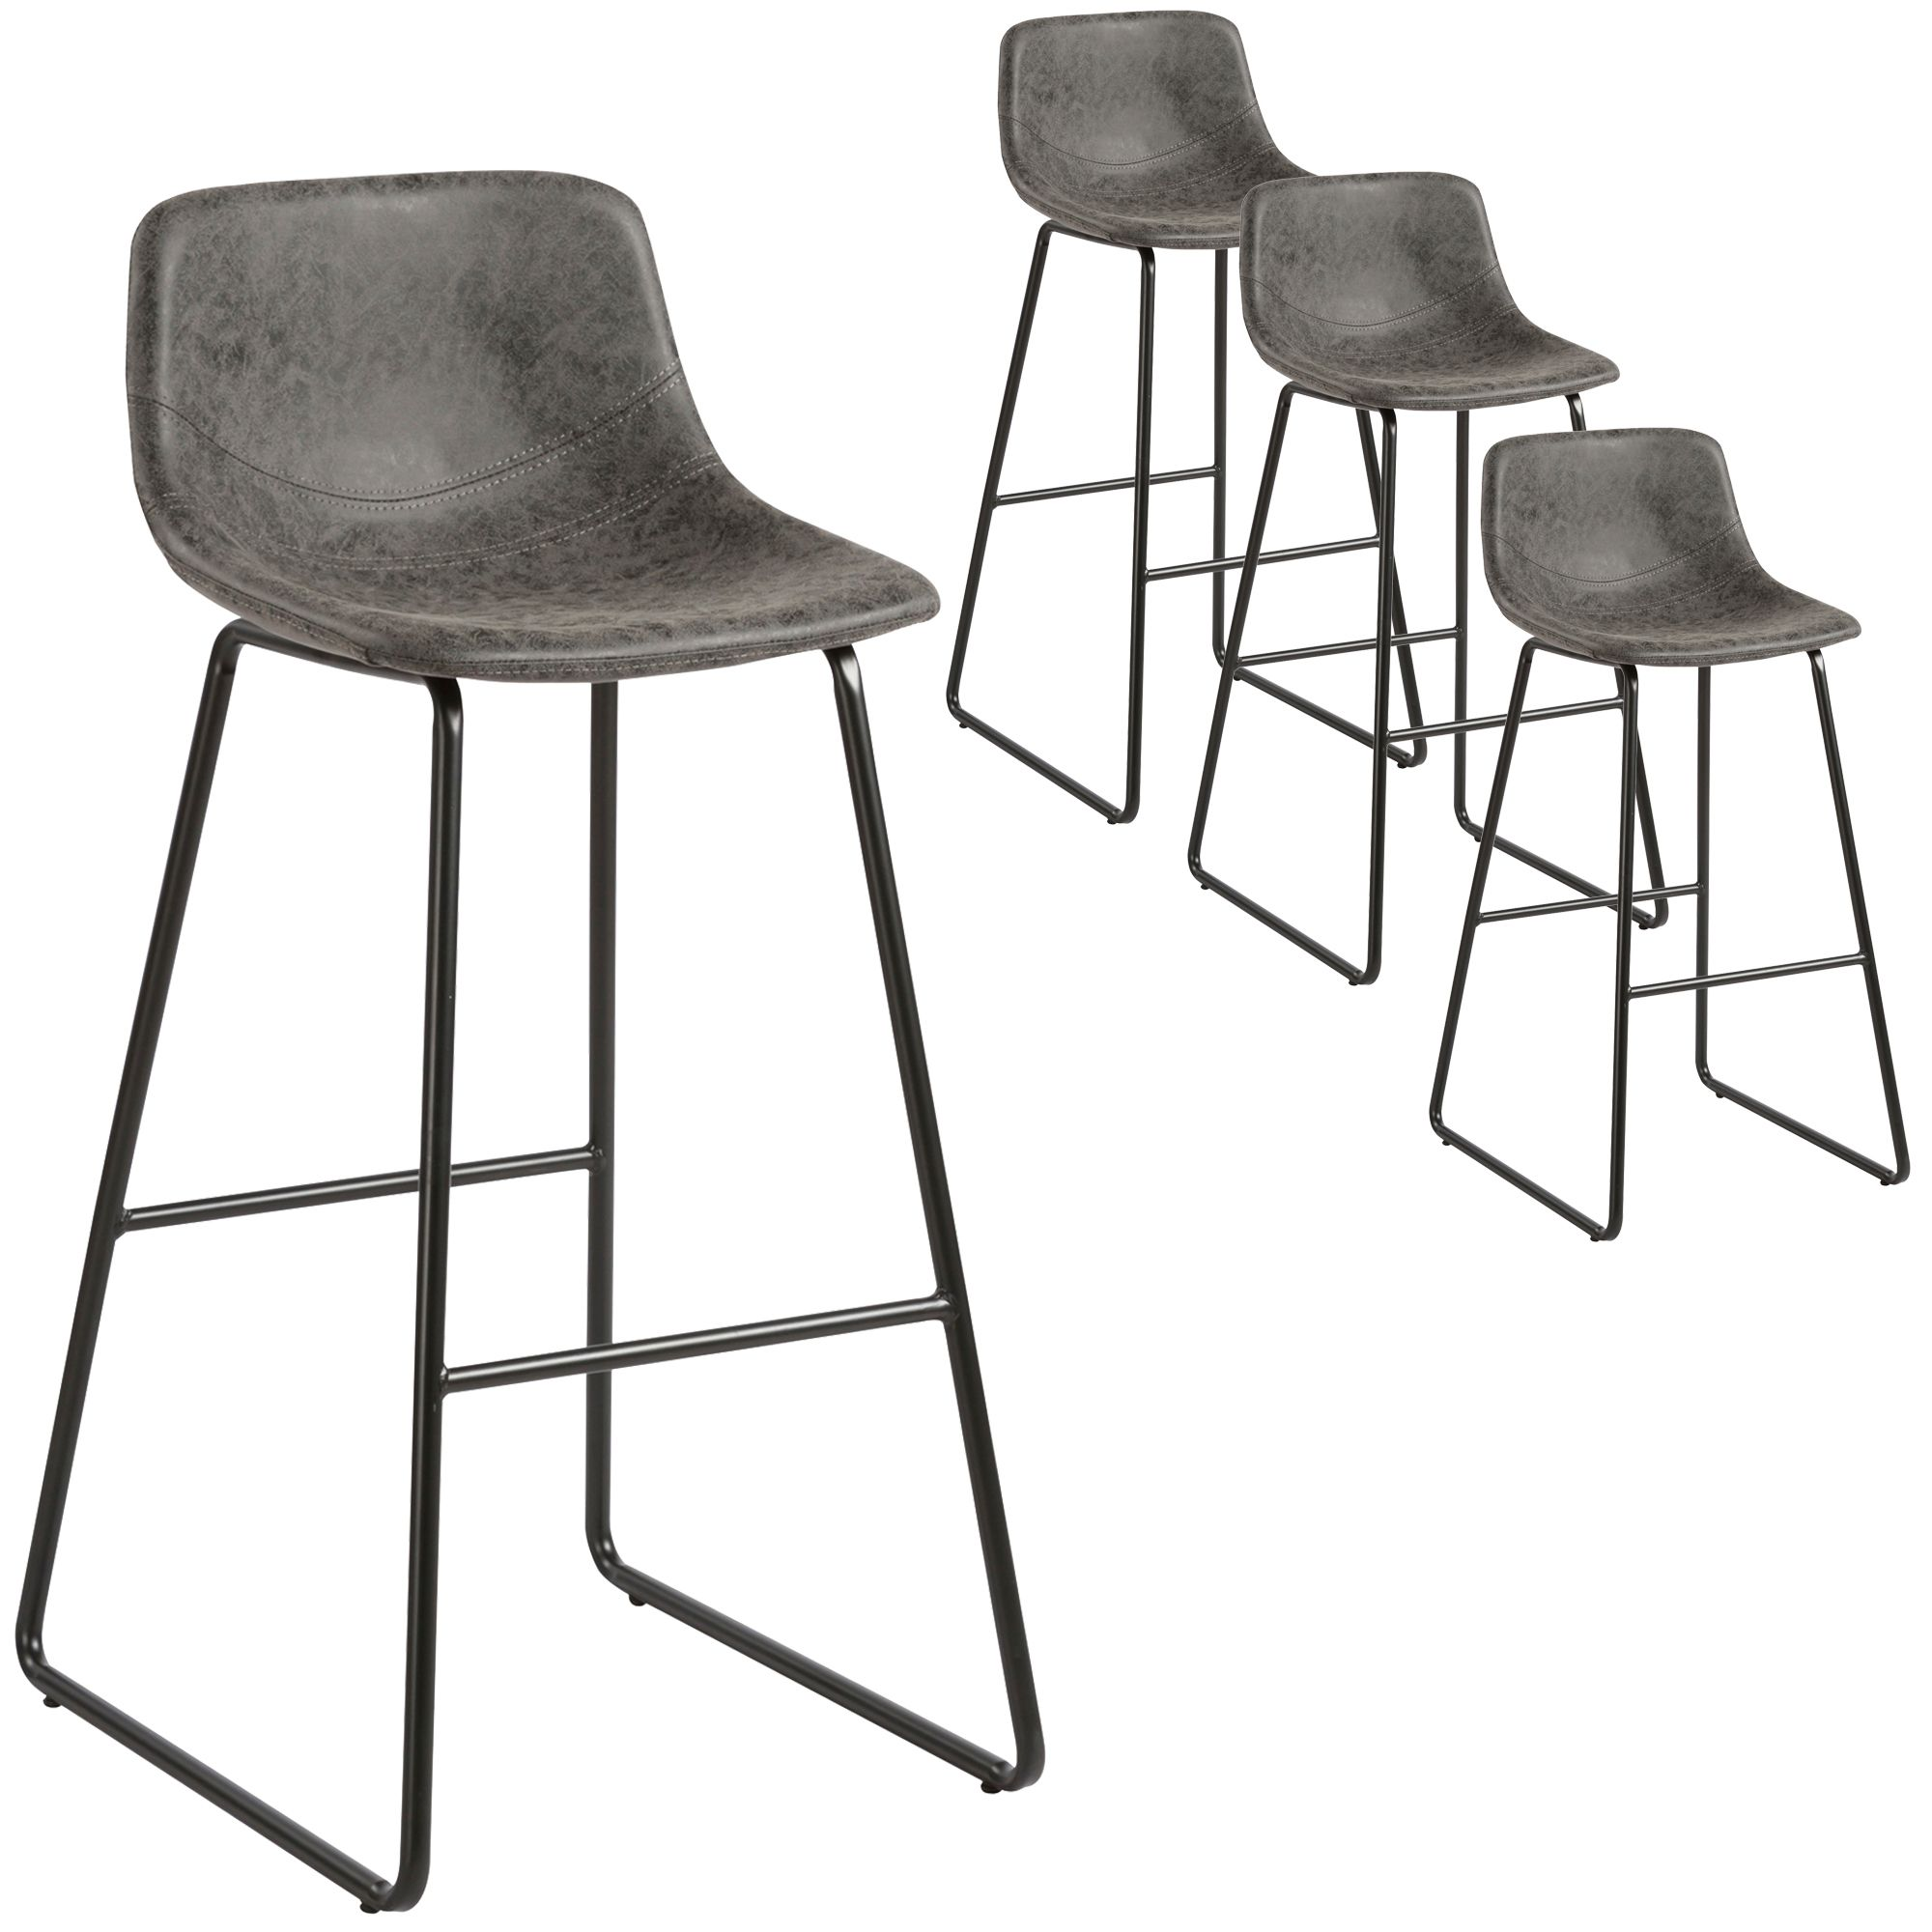 Grey Bailey Faux Leather Barstools Temple Webster Bar Stools Bar Stools Australia Stool